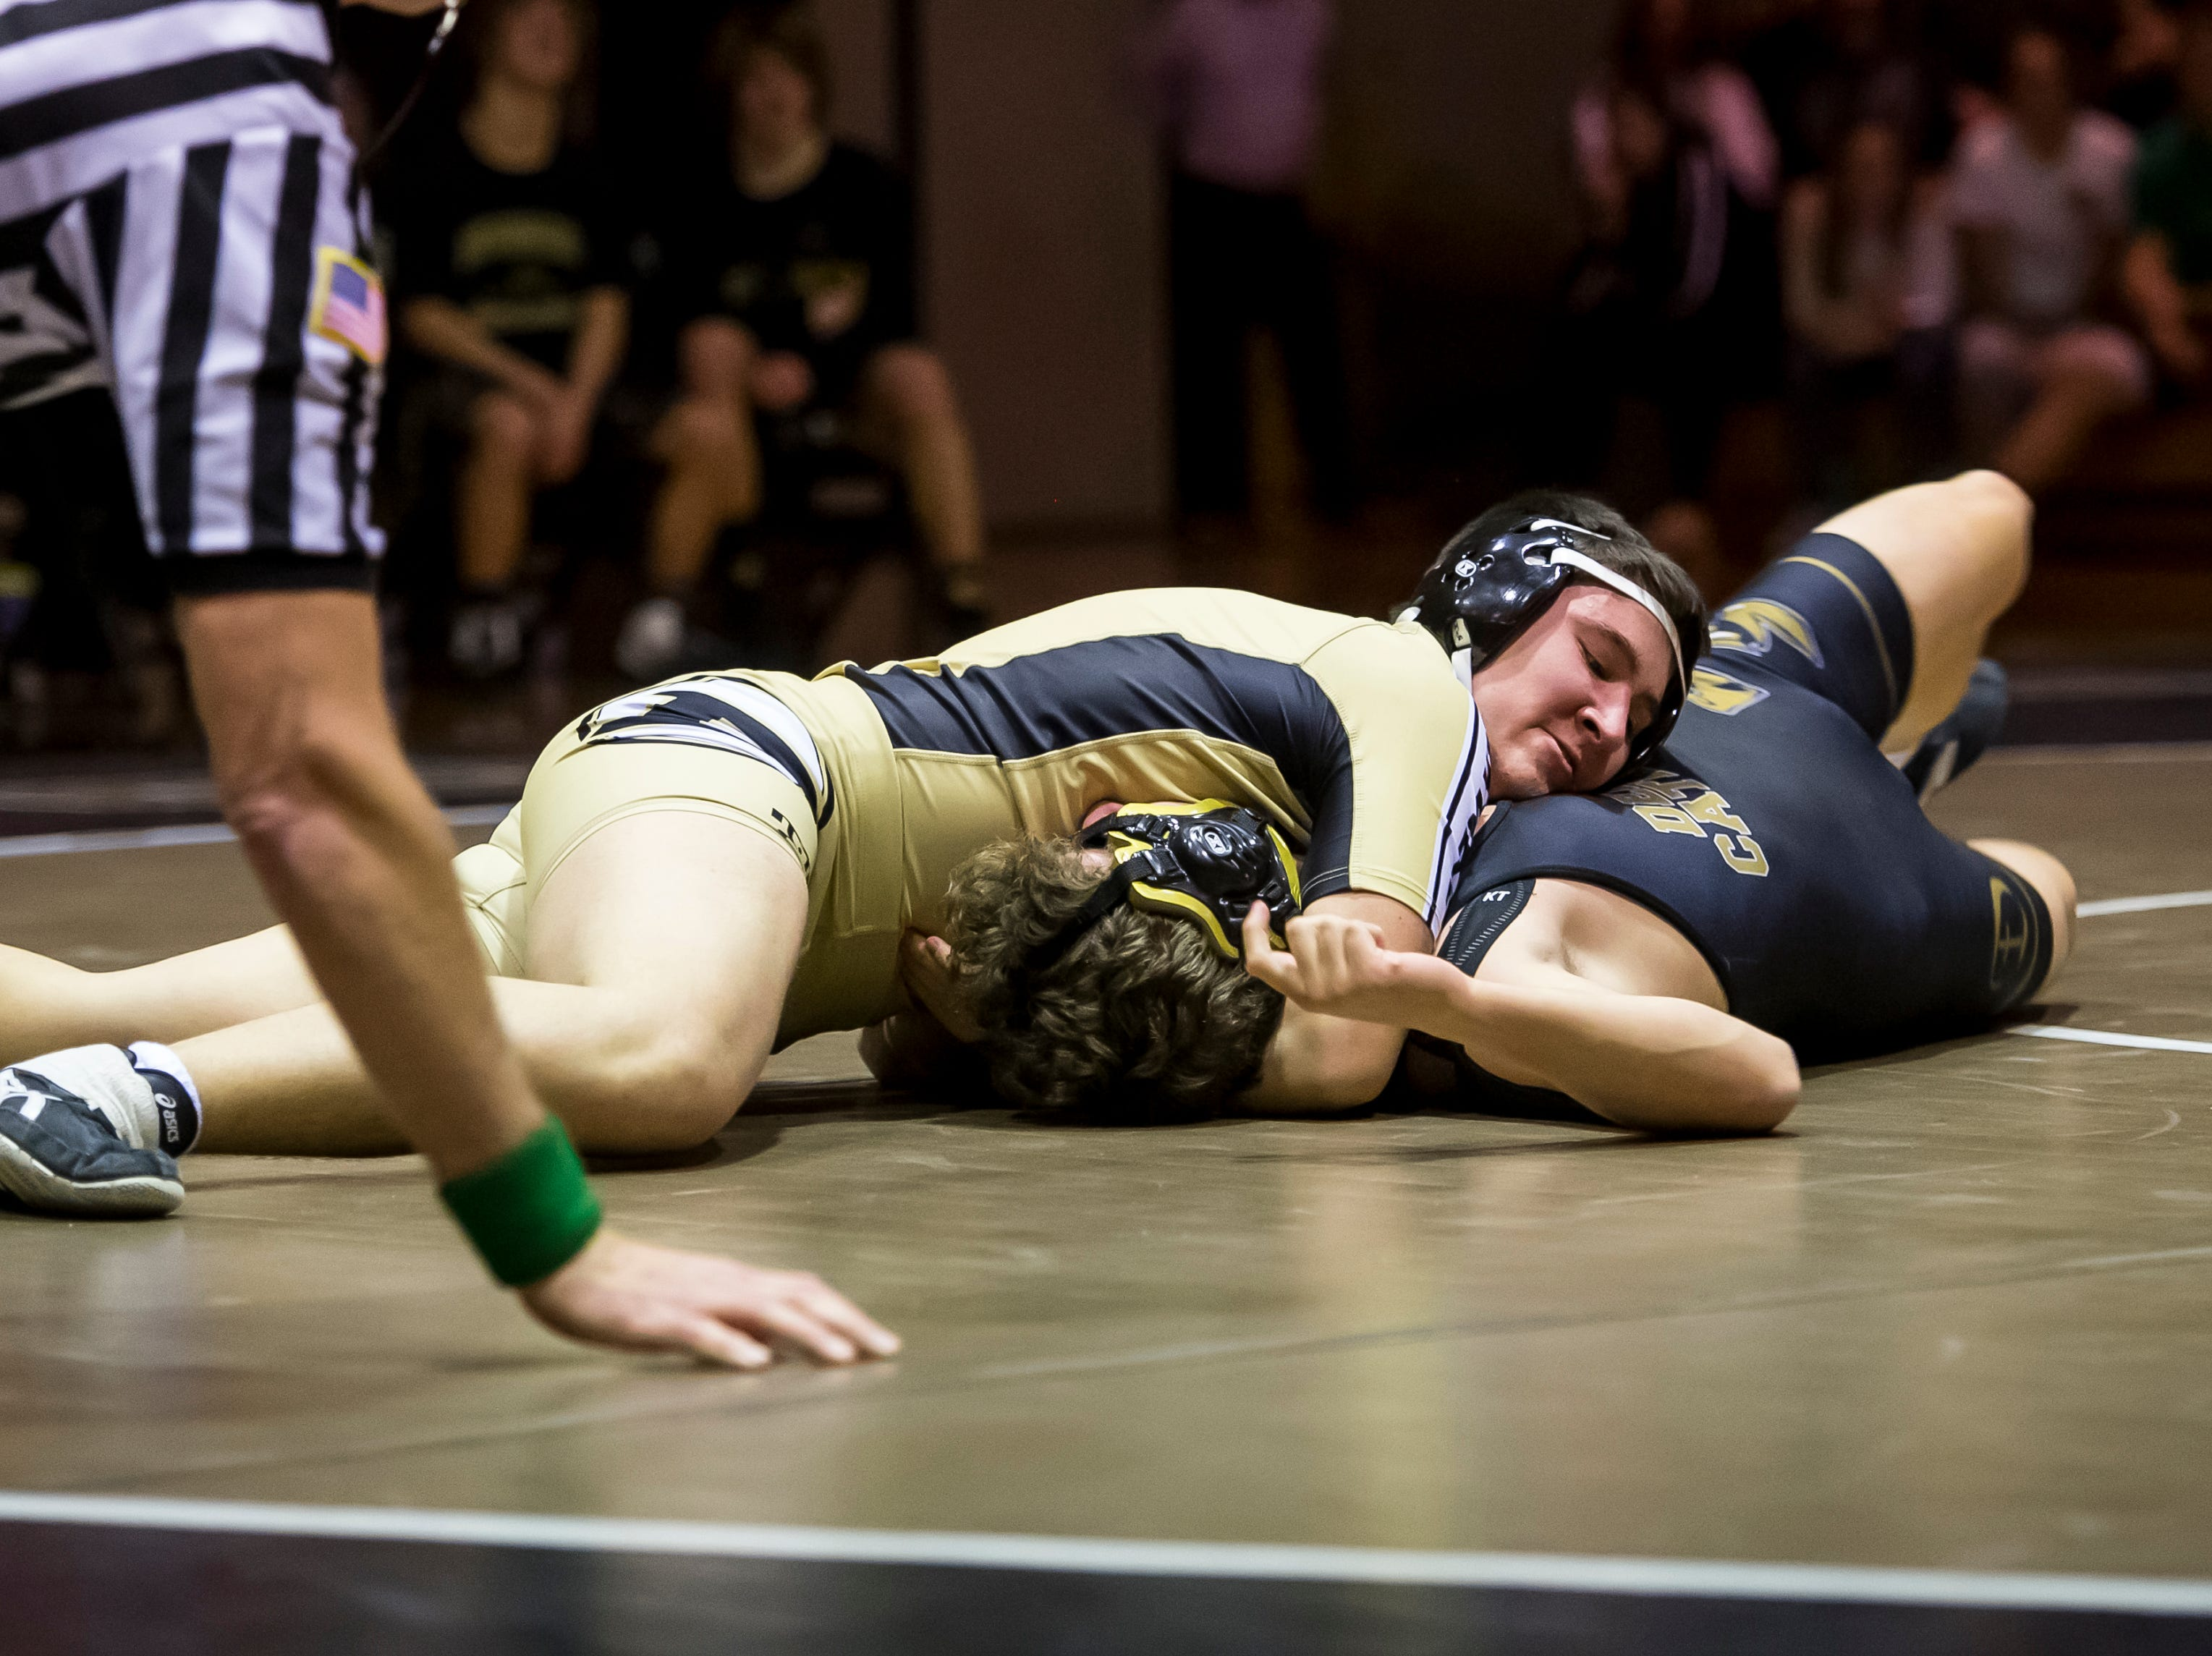 Biglerville's Alex Cook works to pin Delone Catholic's Kyle Denisch in the 170-pound bout at Delone Catholic High School on December 19, 2018. The Canners won 51-21.